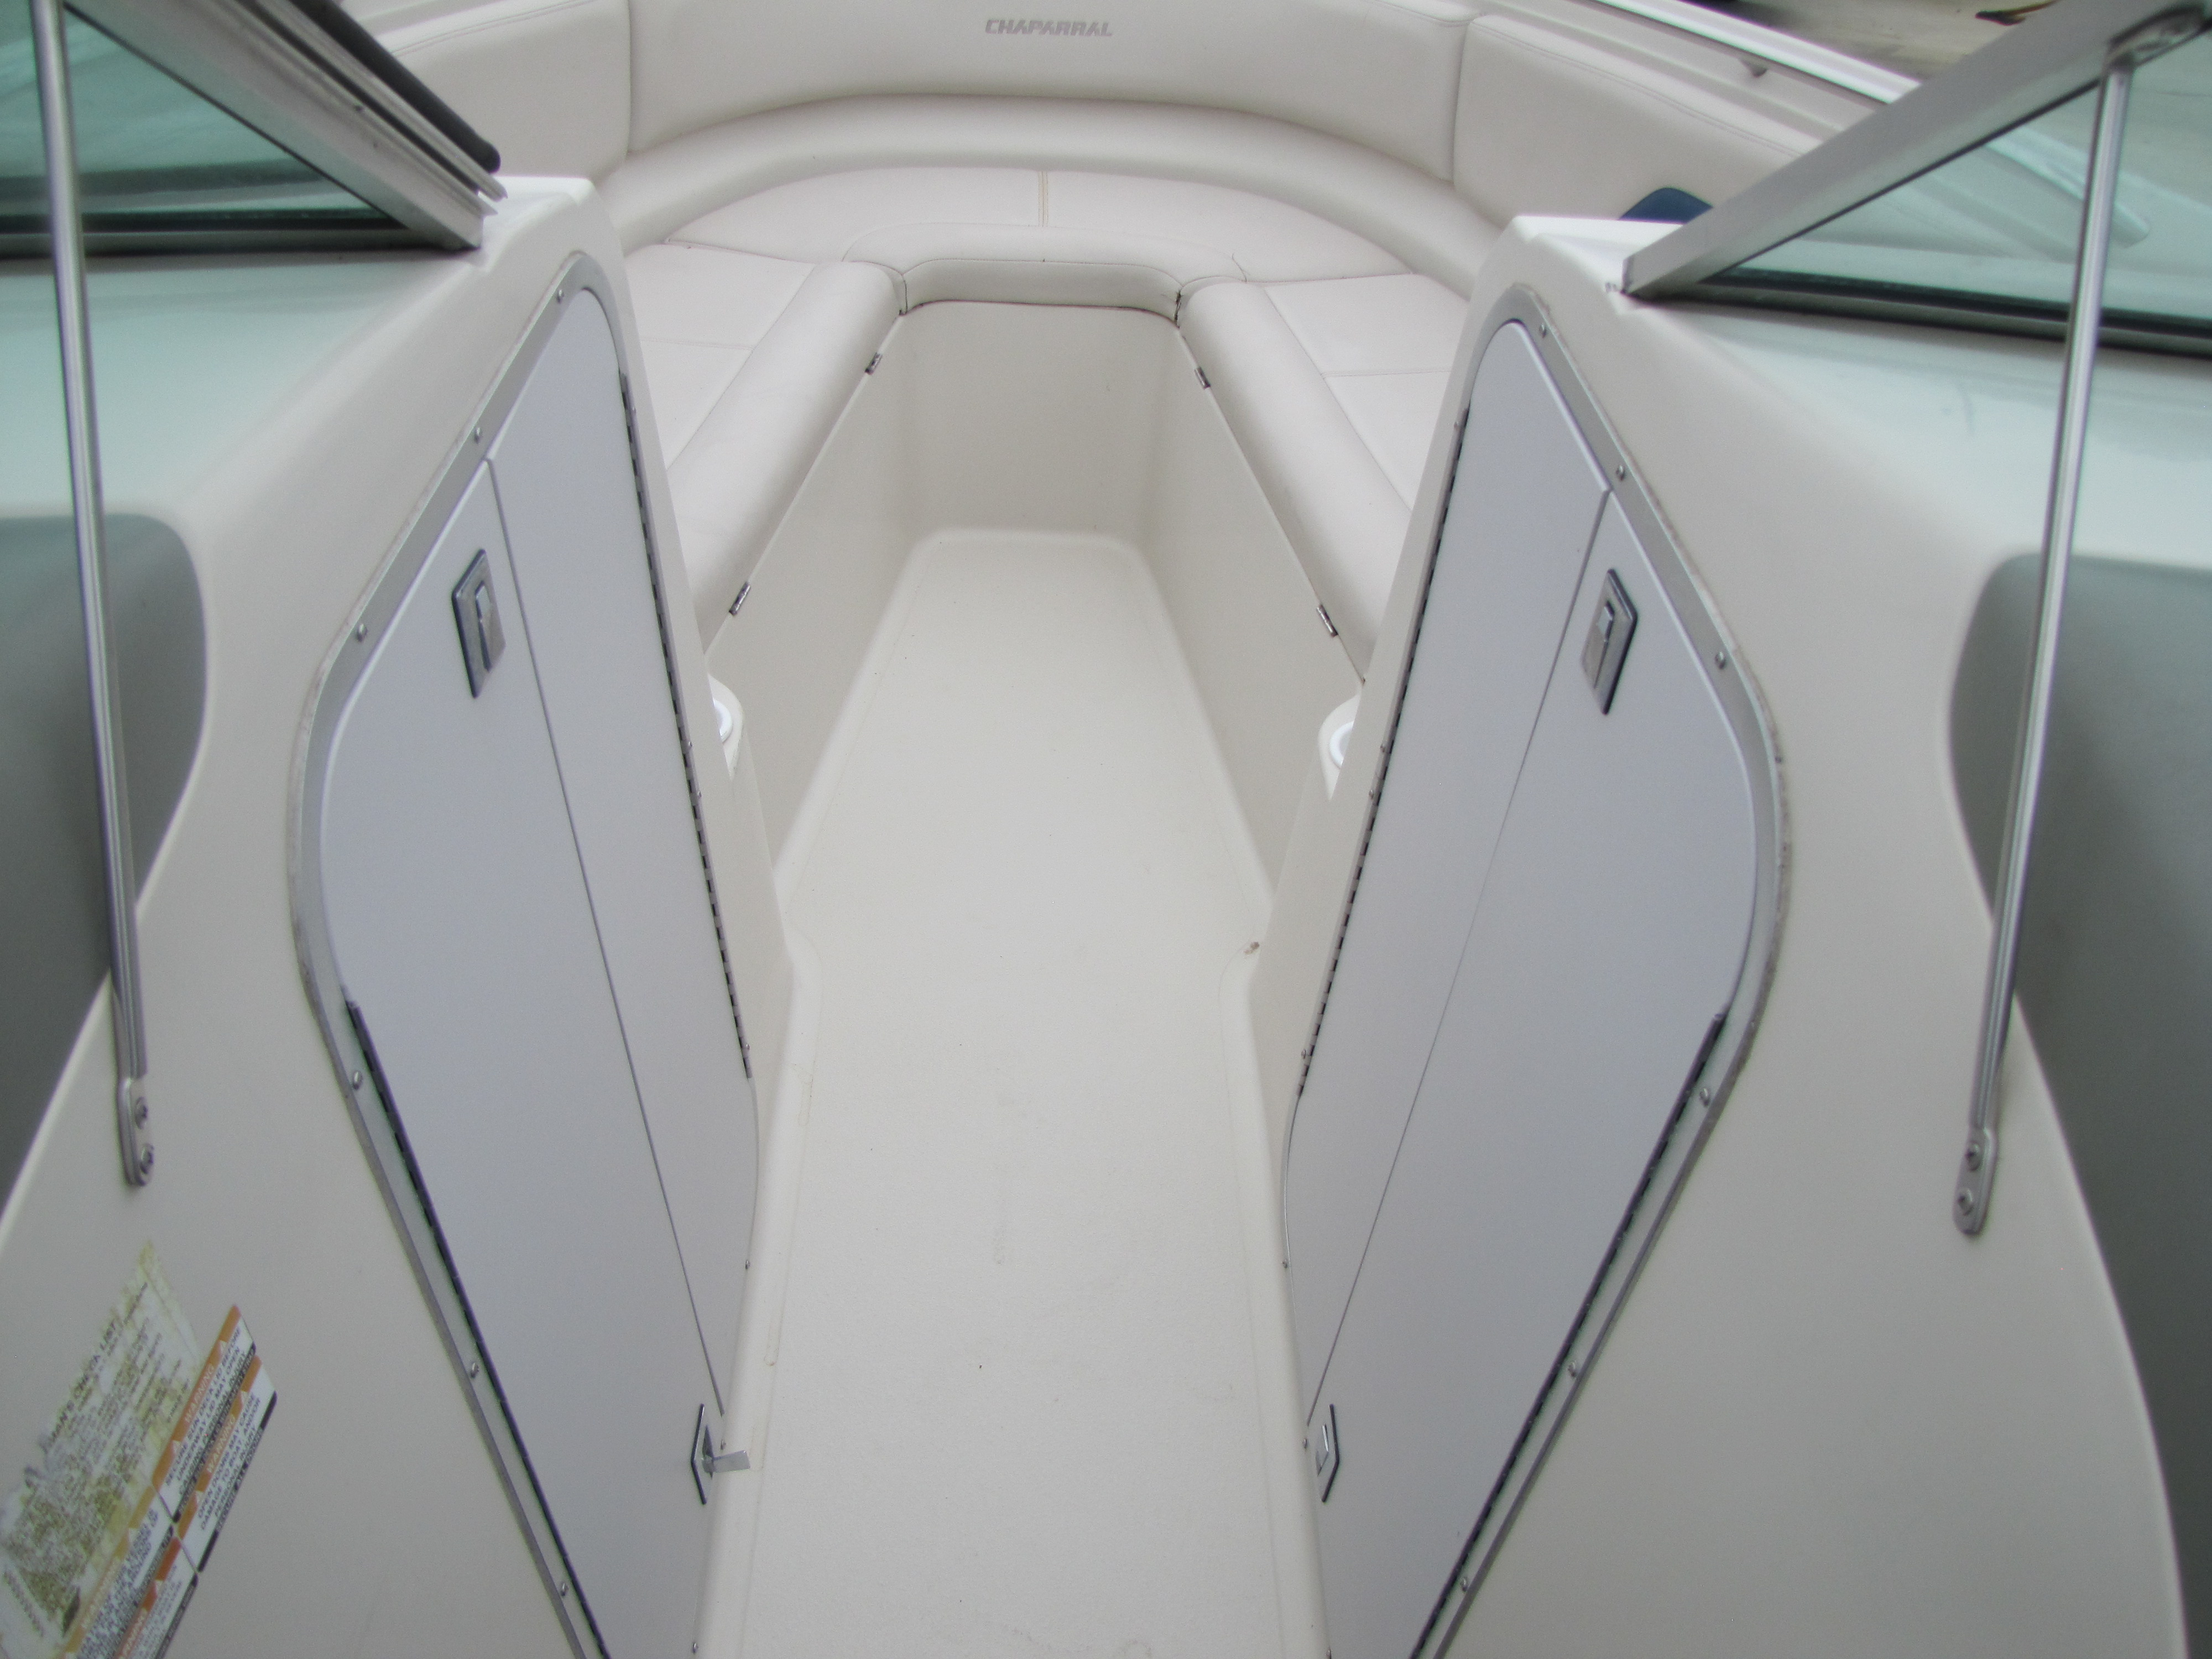 1996 Chaparral boat for sale, model of the boat is 2330 & Image # 2 of 14